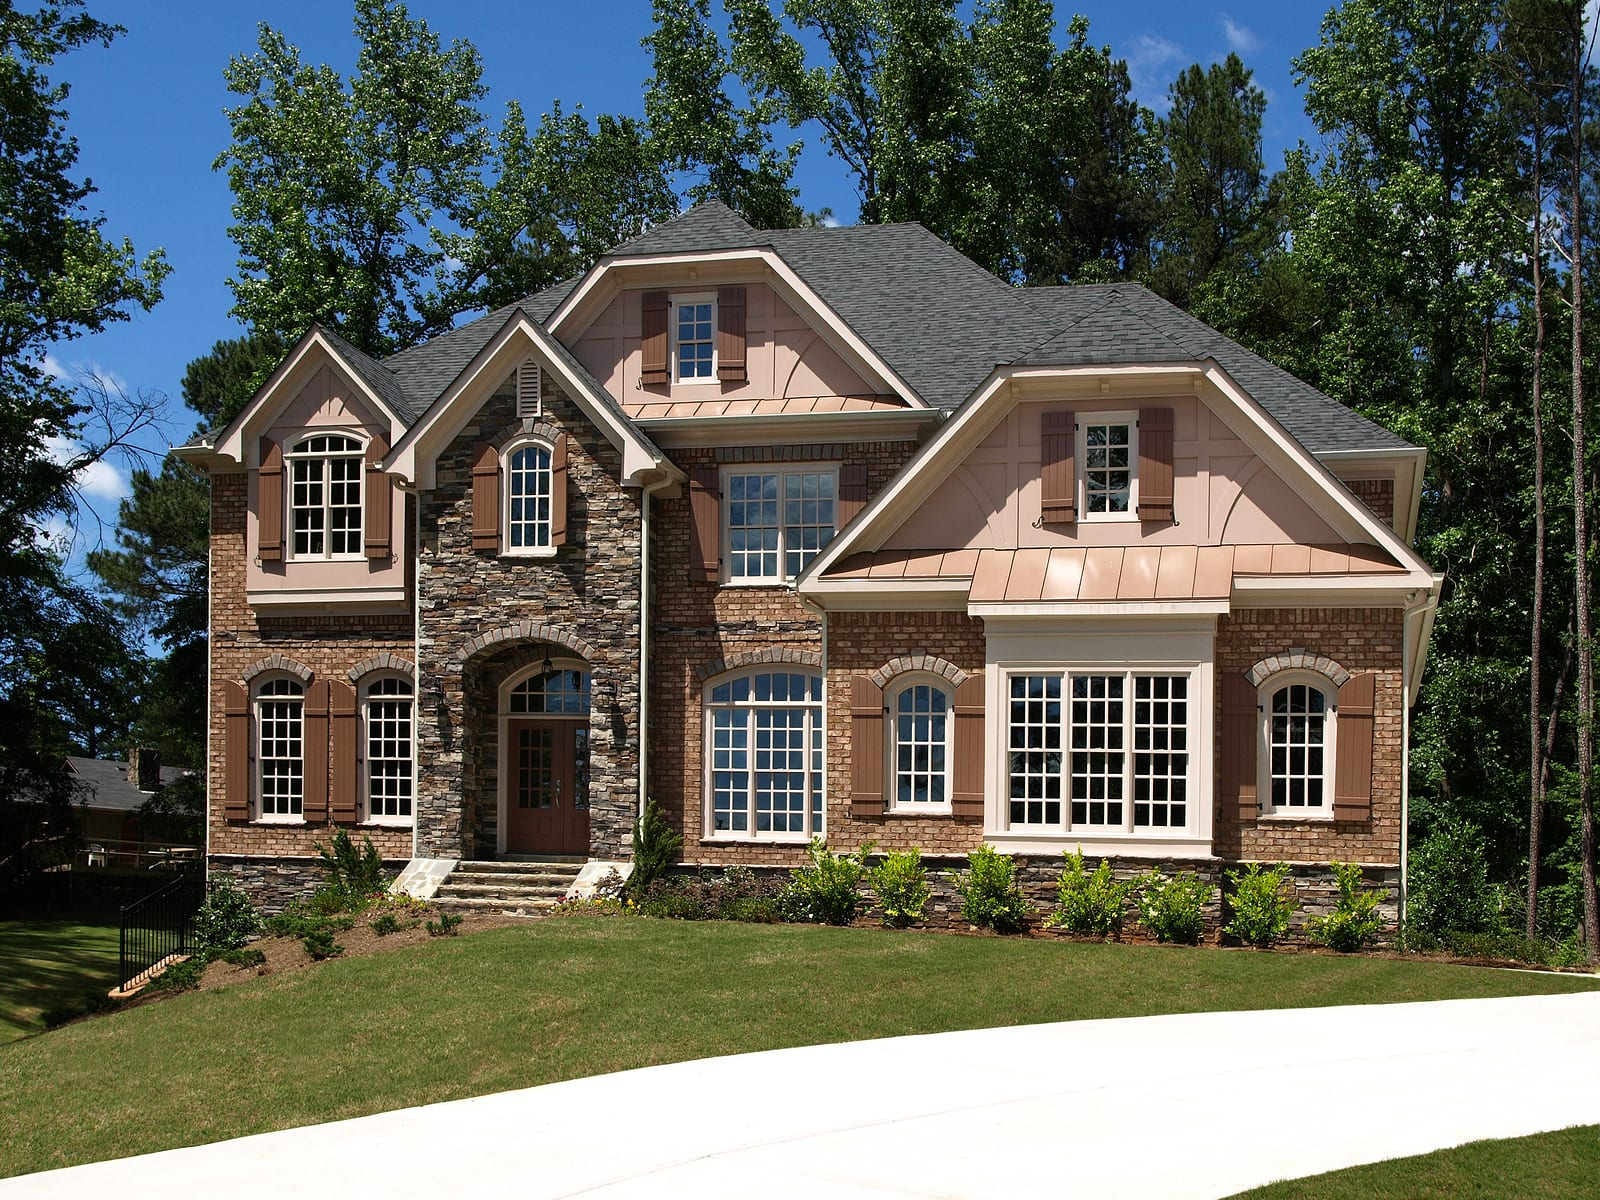 Model Luxury Home Exterior front view with driveway